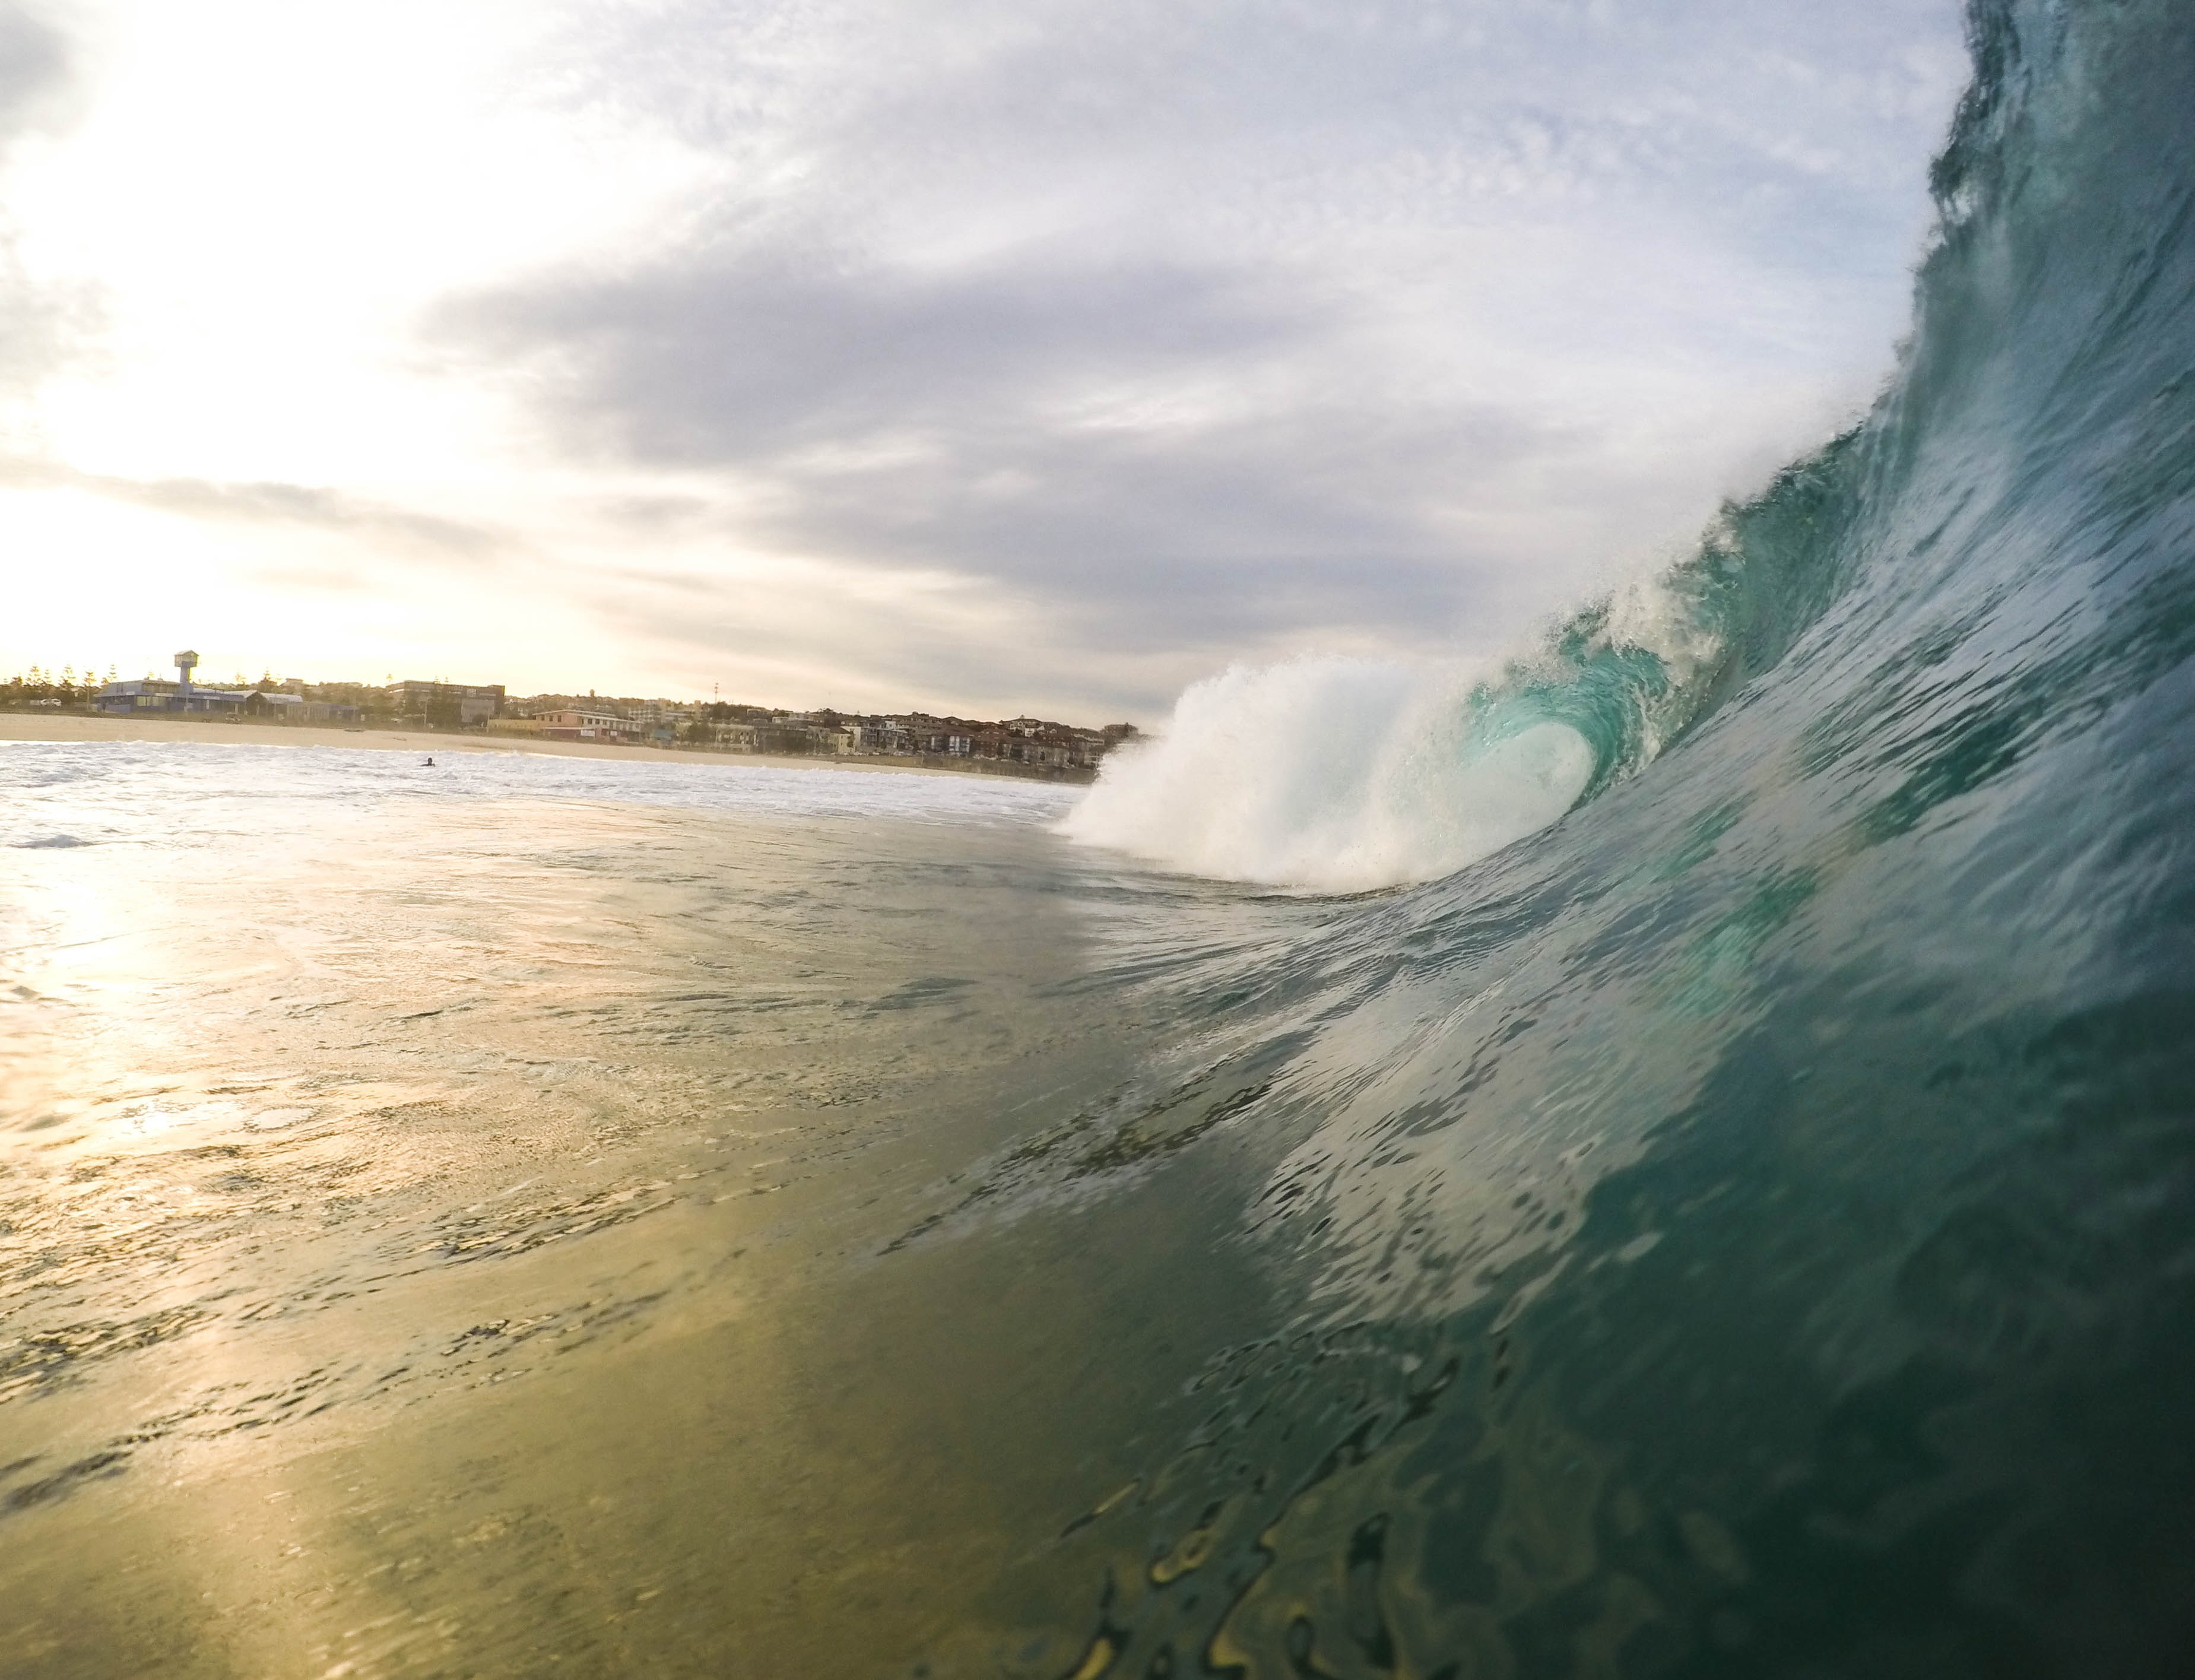 A large wave coming in during the early evening sunset.